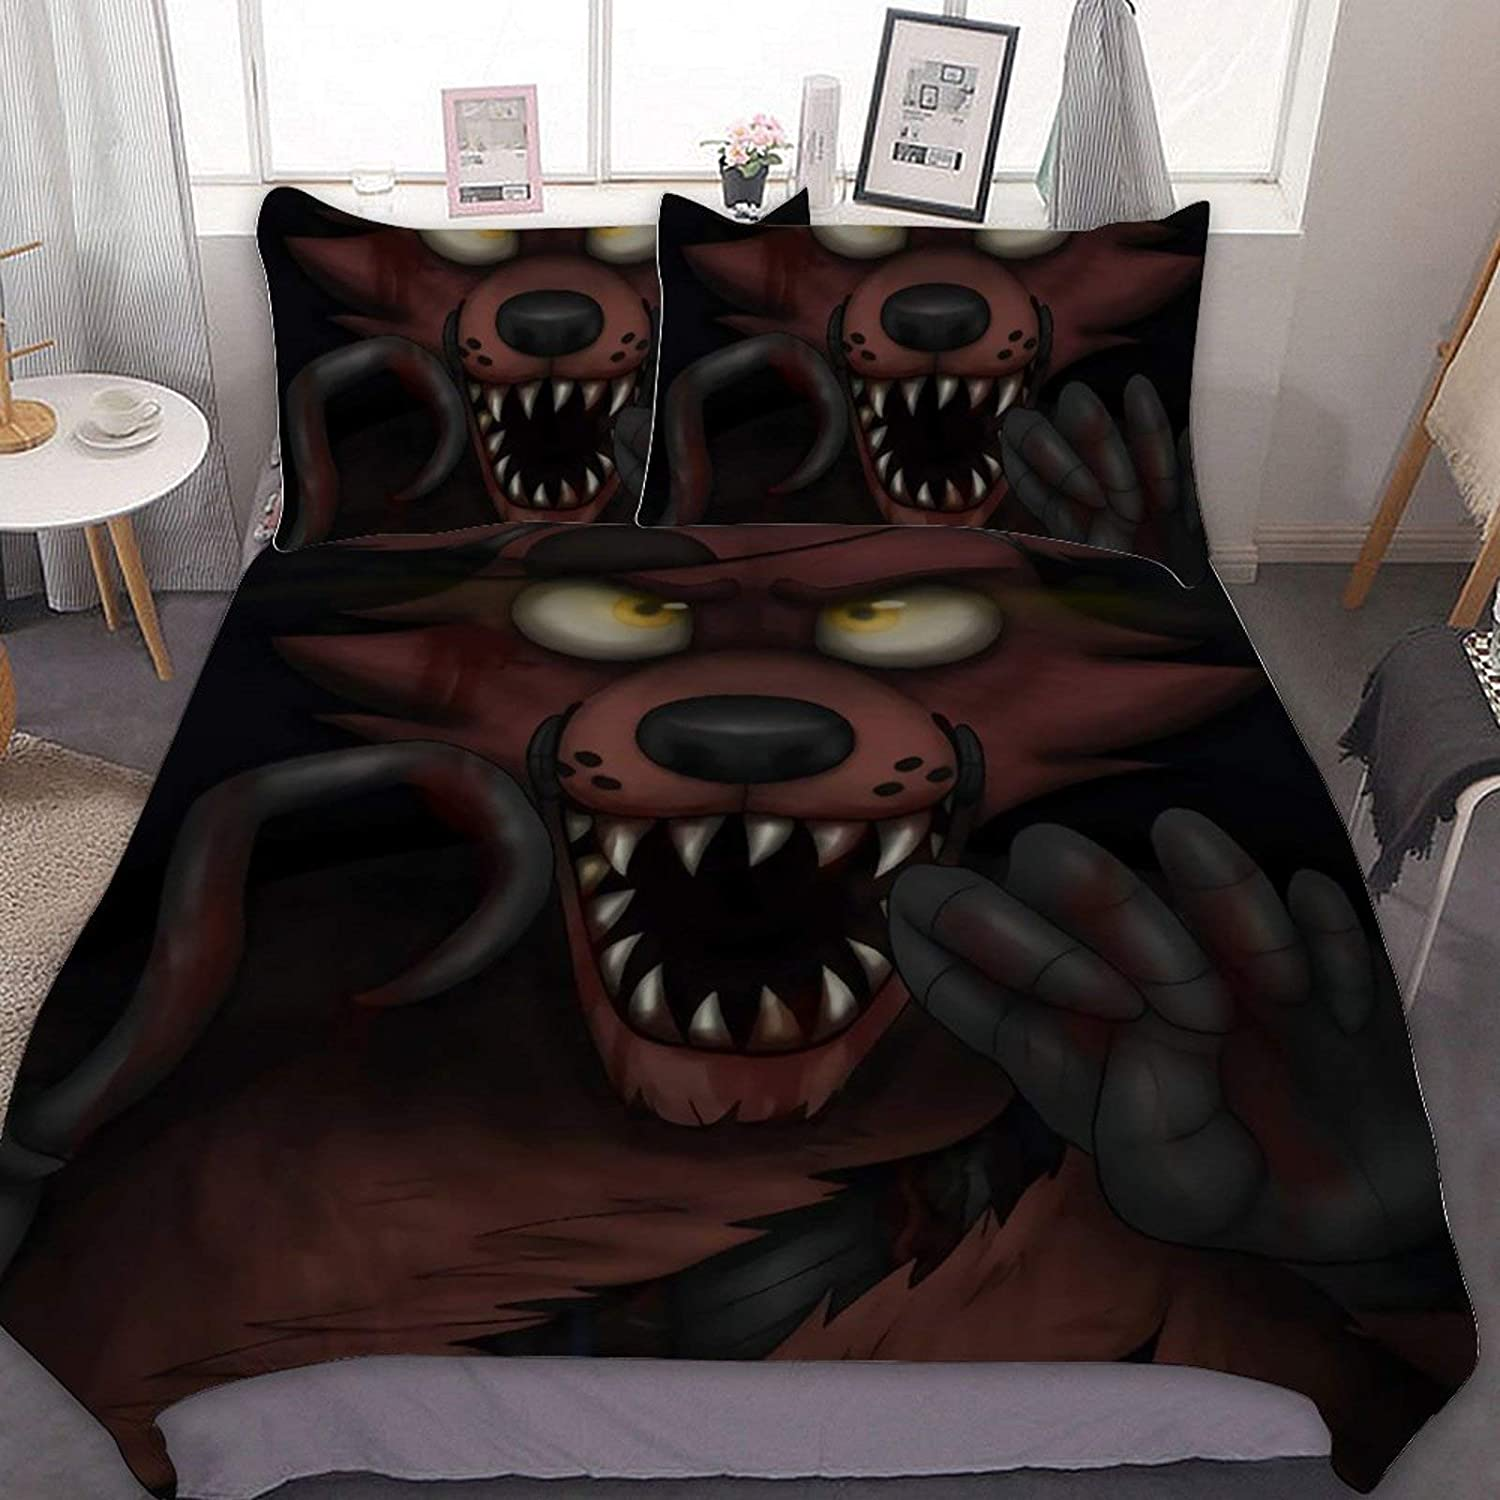 AYMAYM Five Nights at Freddy Bedding Set Three-Piece Bed Linens Duvet Cover Bed Sheet Pillowcase Twin Full Bed Especially Big Size 86x70in